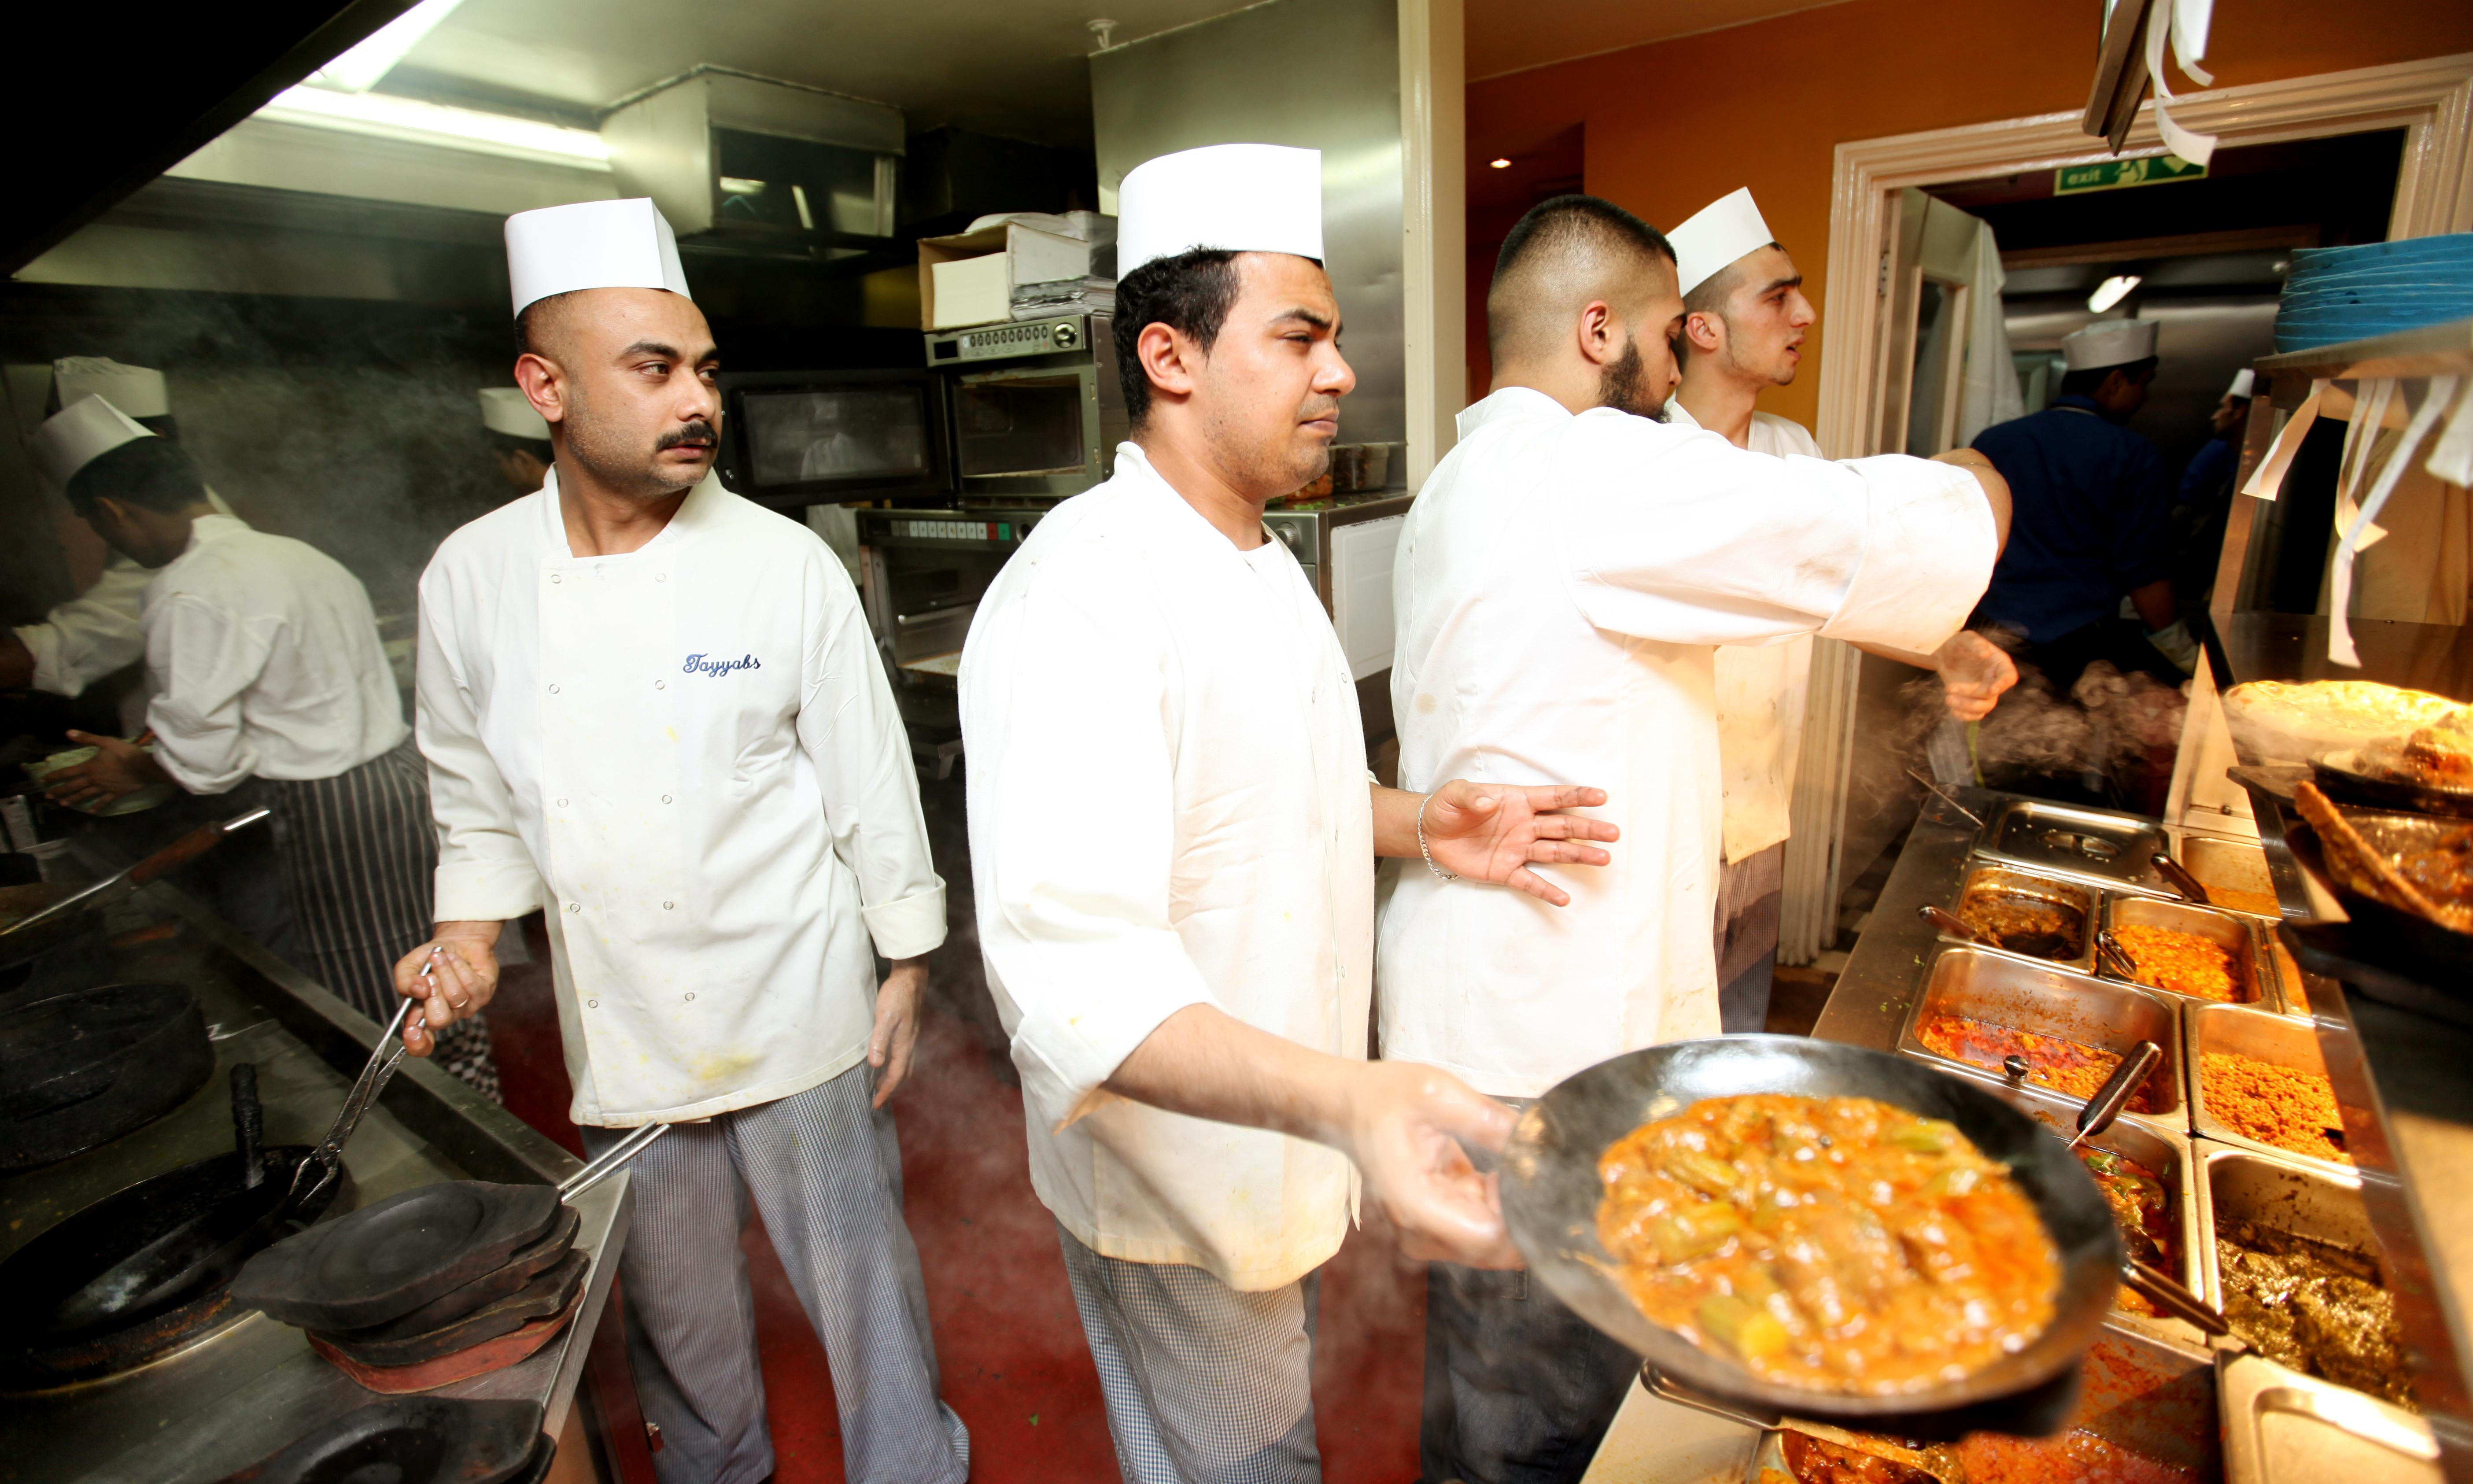 I swallowed the Brexit lies. Now I regret telling curry house workers to vote leave